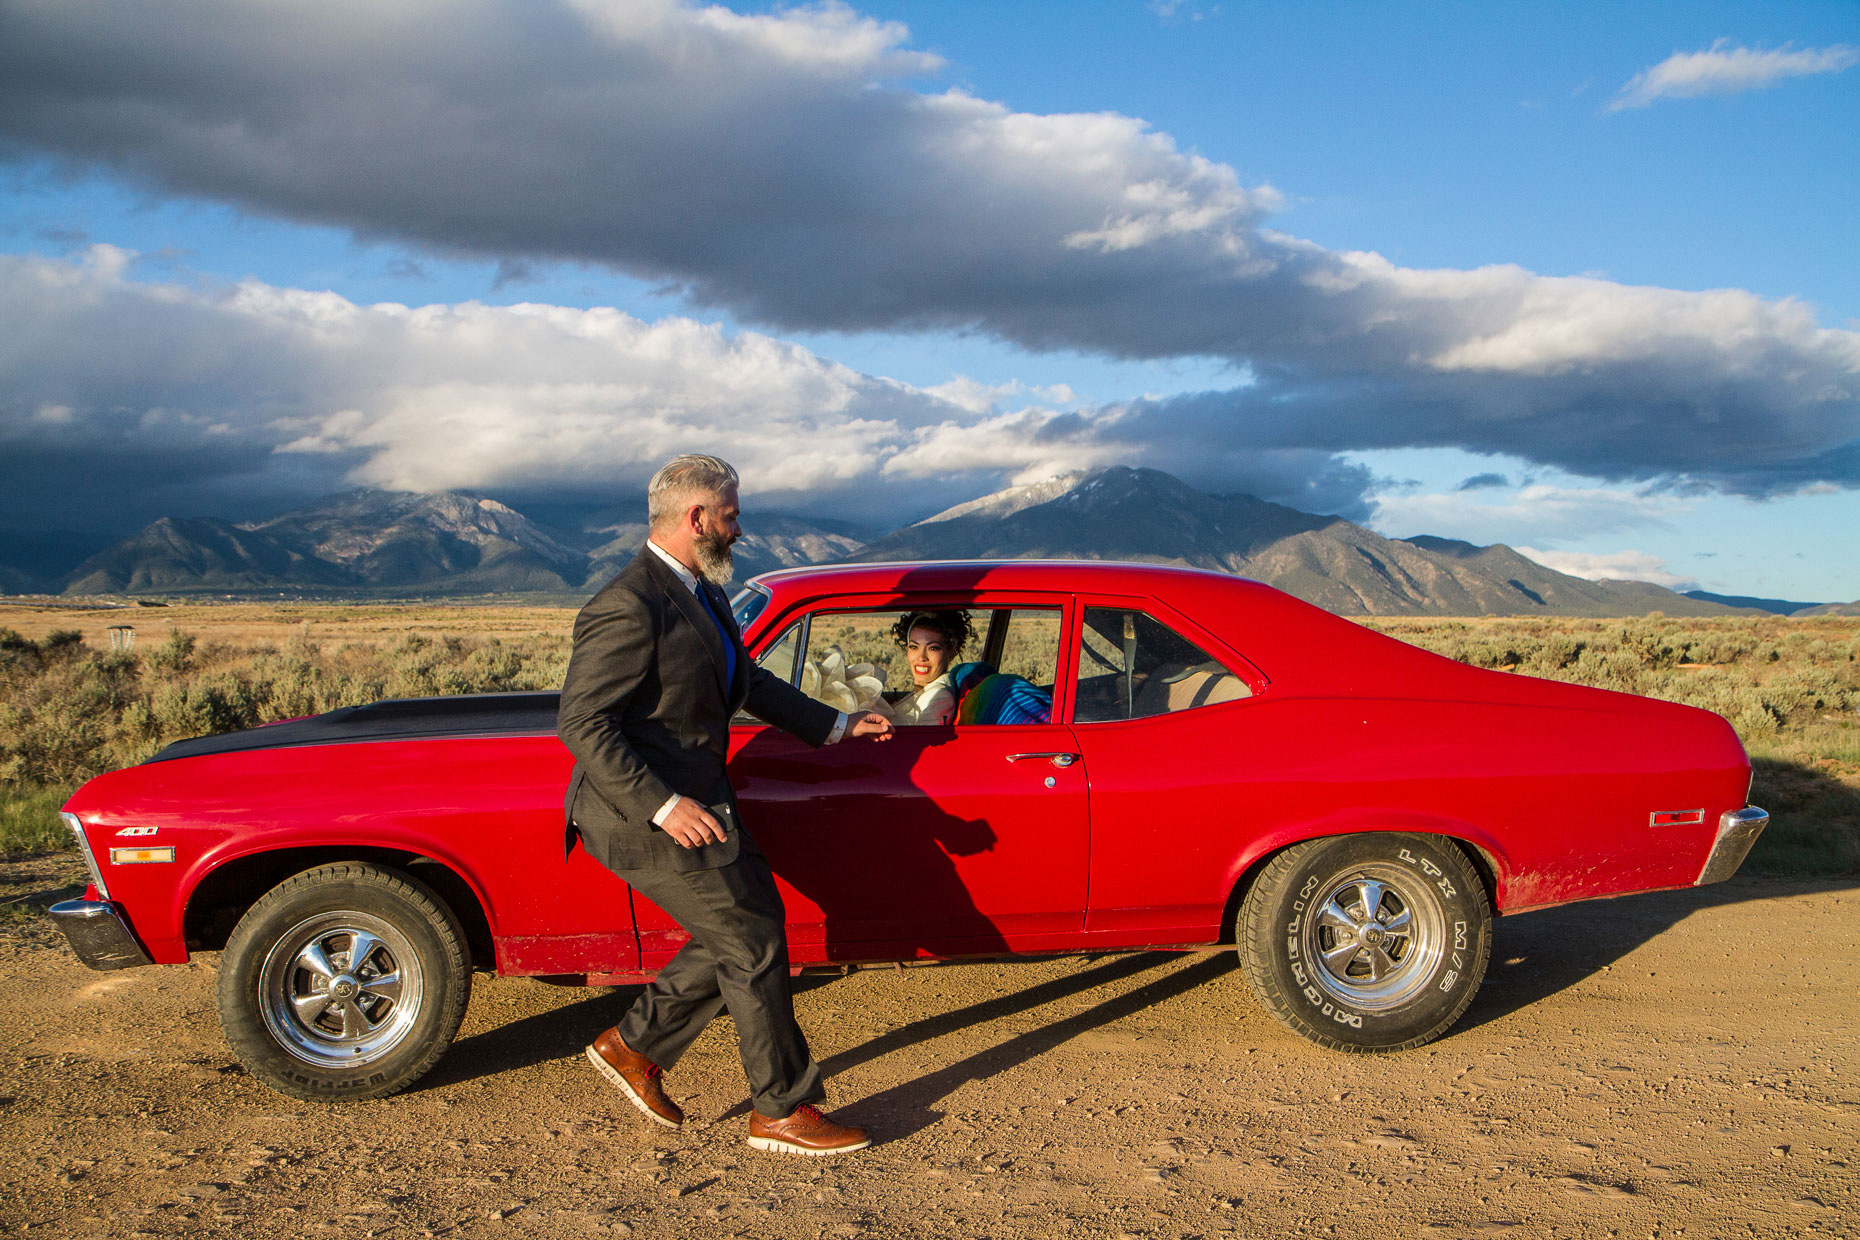 Taos Mesa Brewery wedding couple in red car